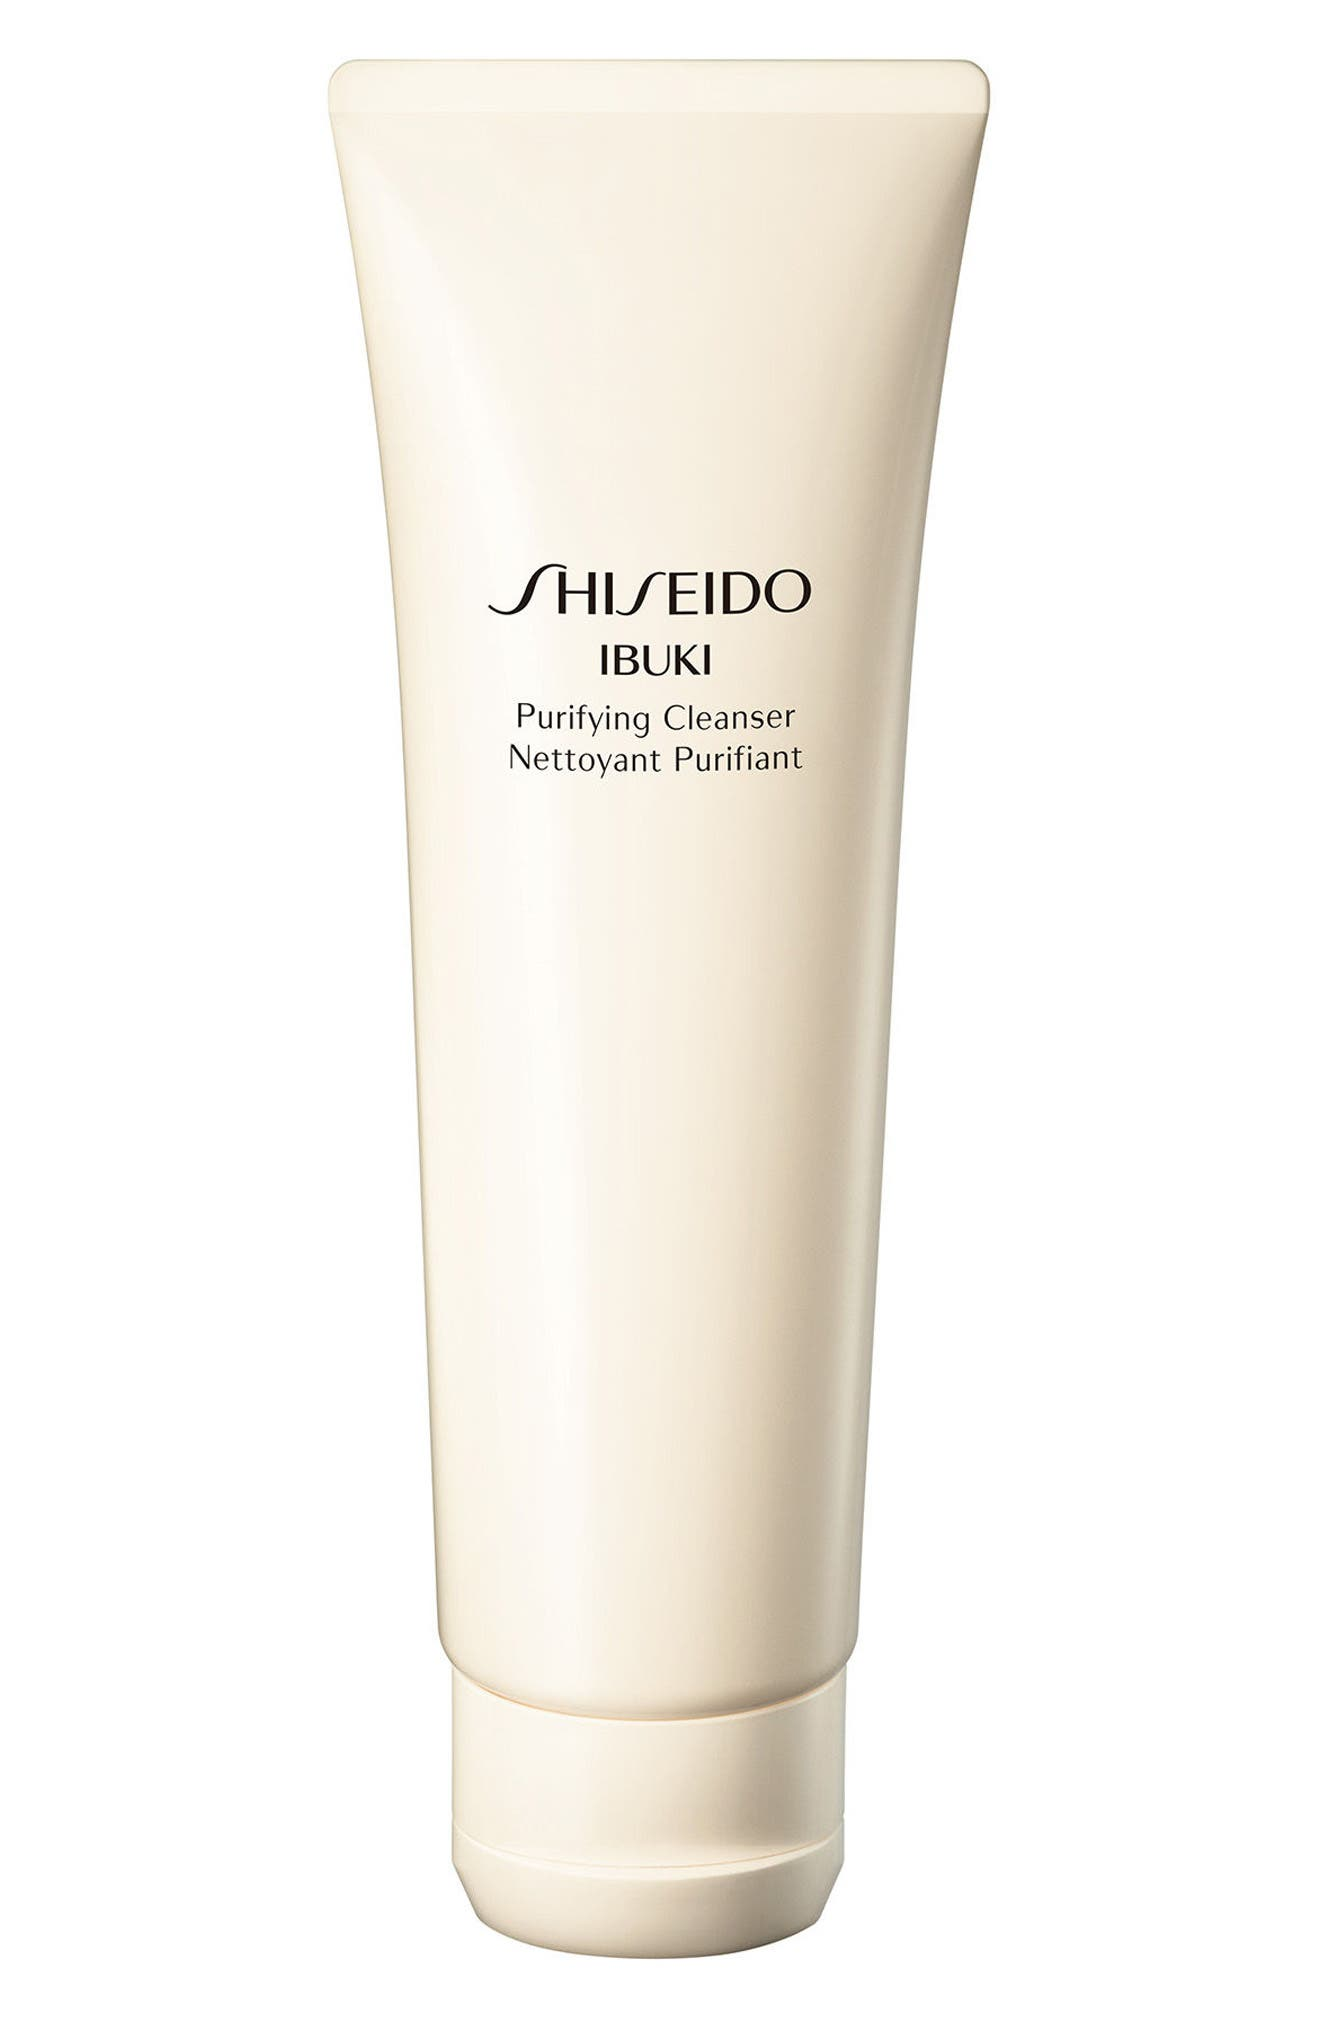 Shiseido Ibuki Purifying Cleanser